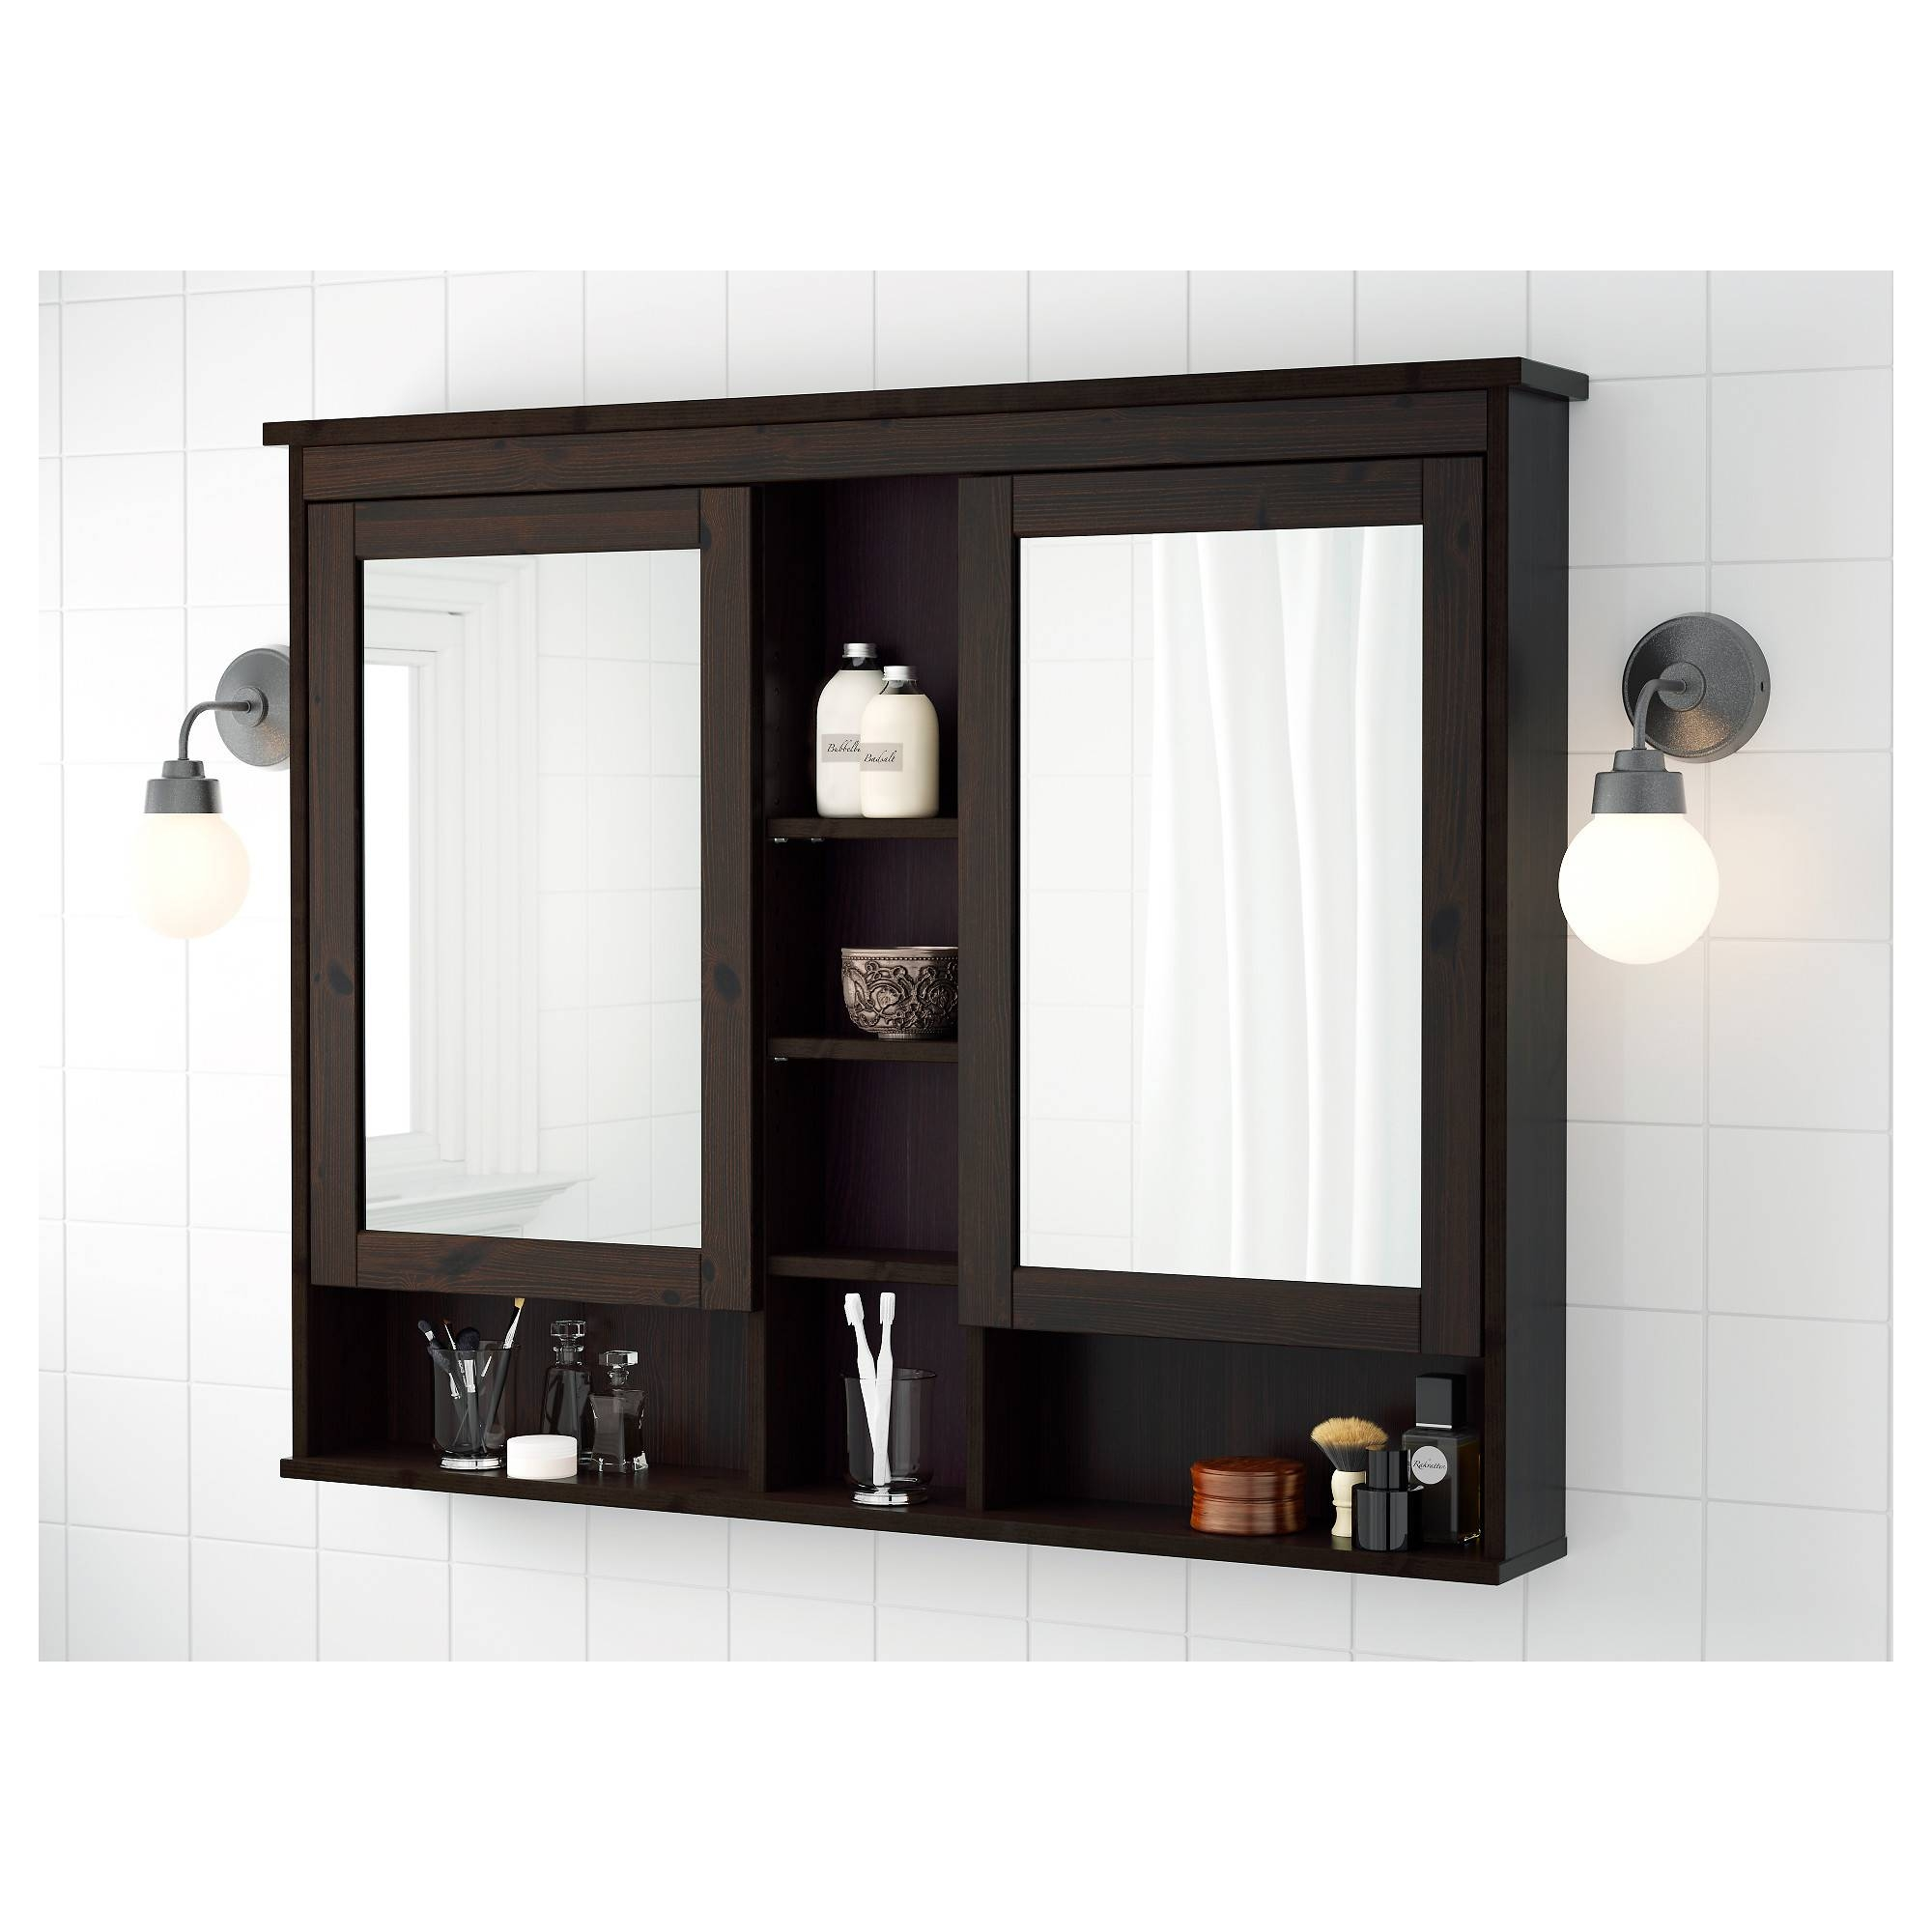 Hemnes Mirror Cabinet With 2 Doors – Black Brown Stain, 32 5/8X6 1 Inside Black Cabinet Mirrors (View 11 of 15)